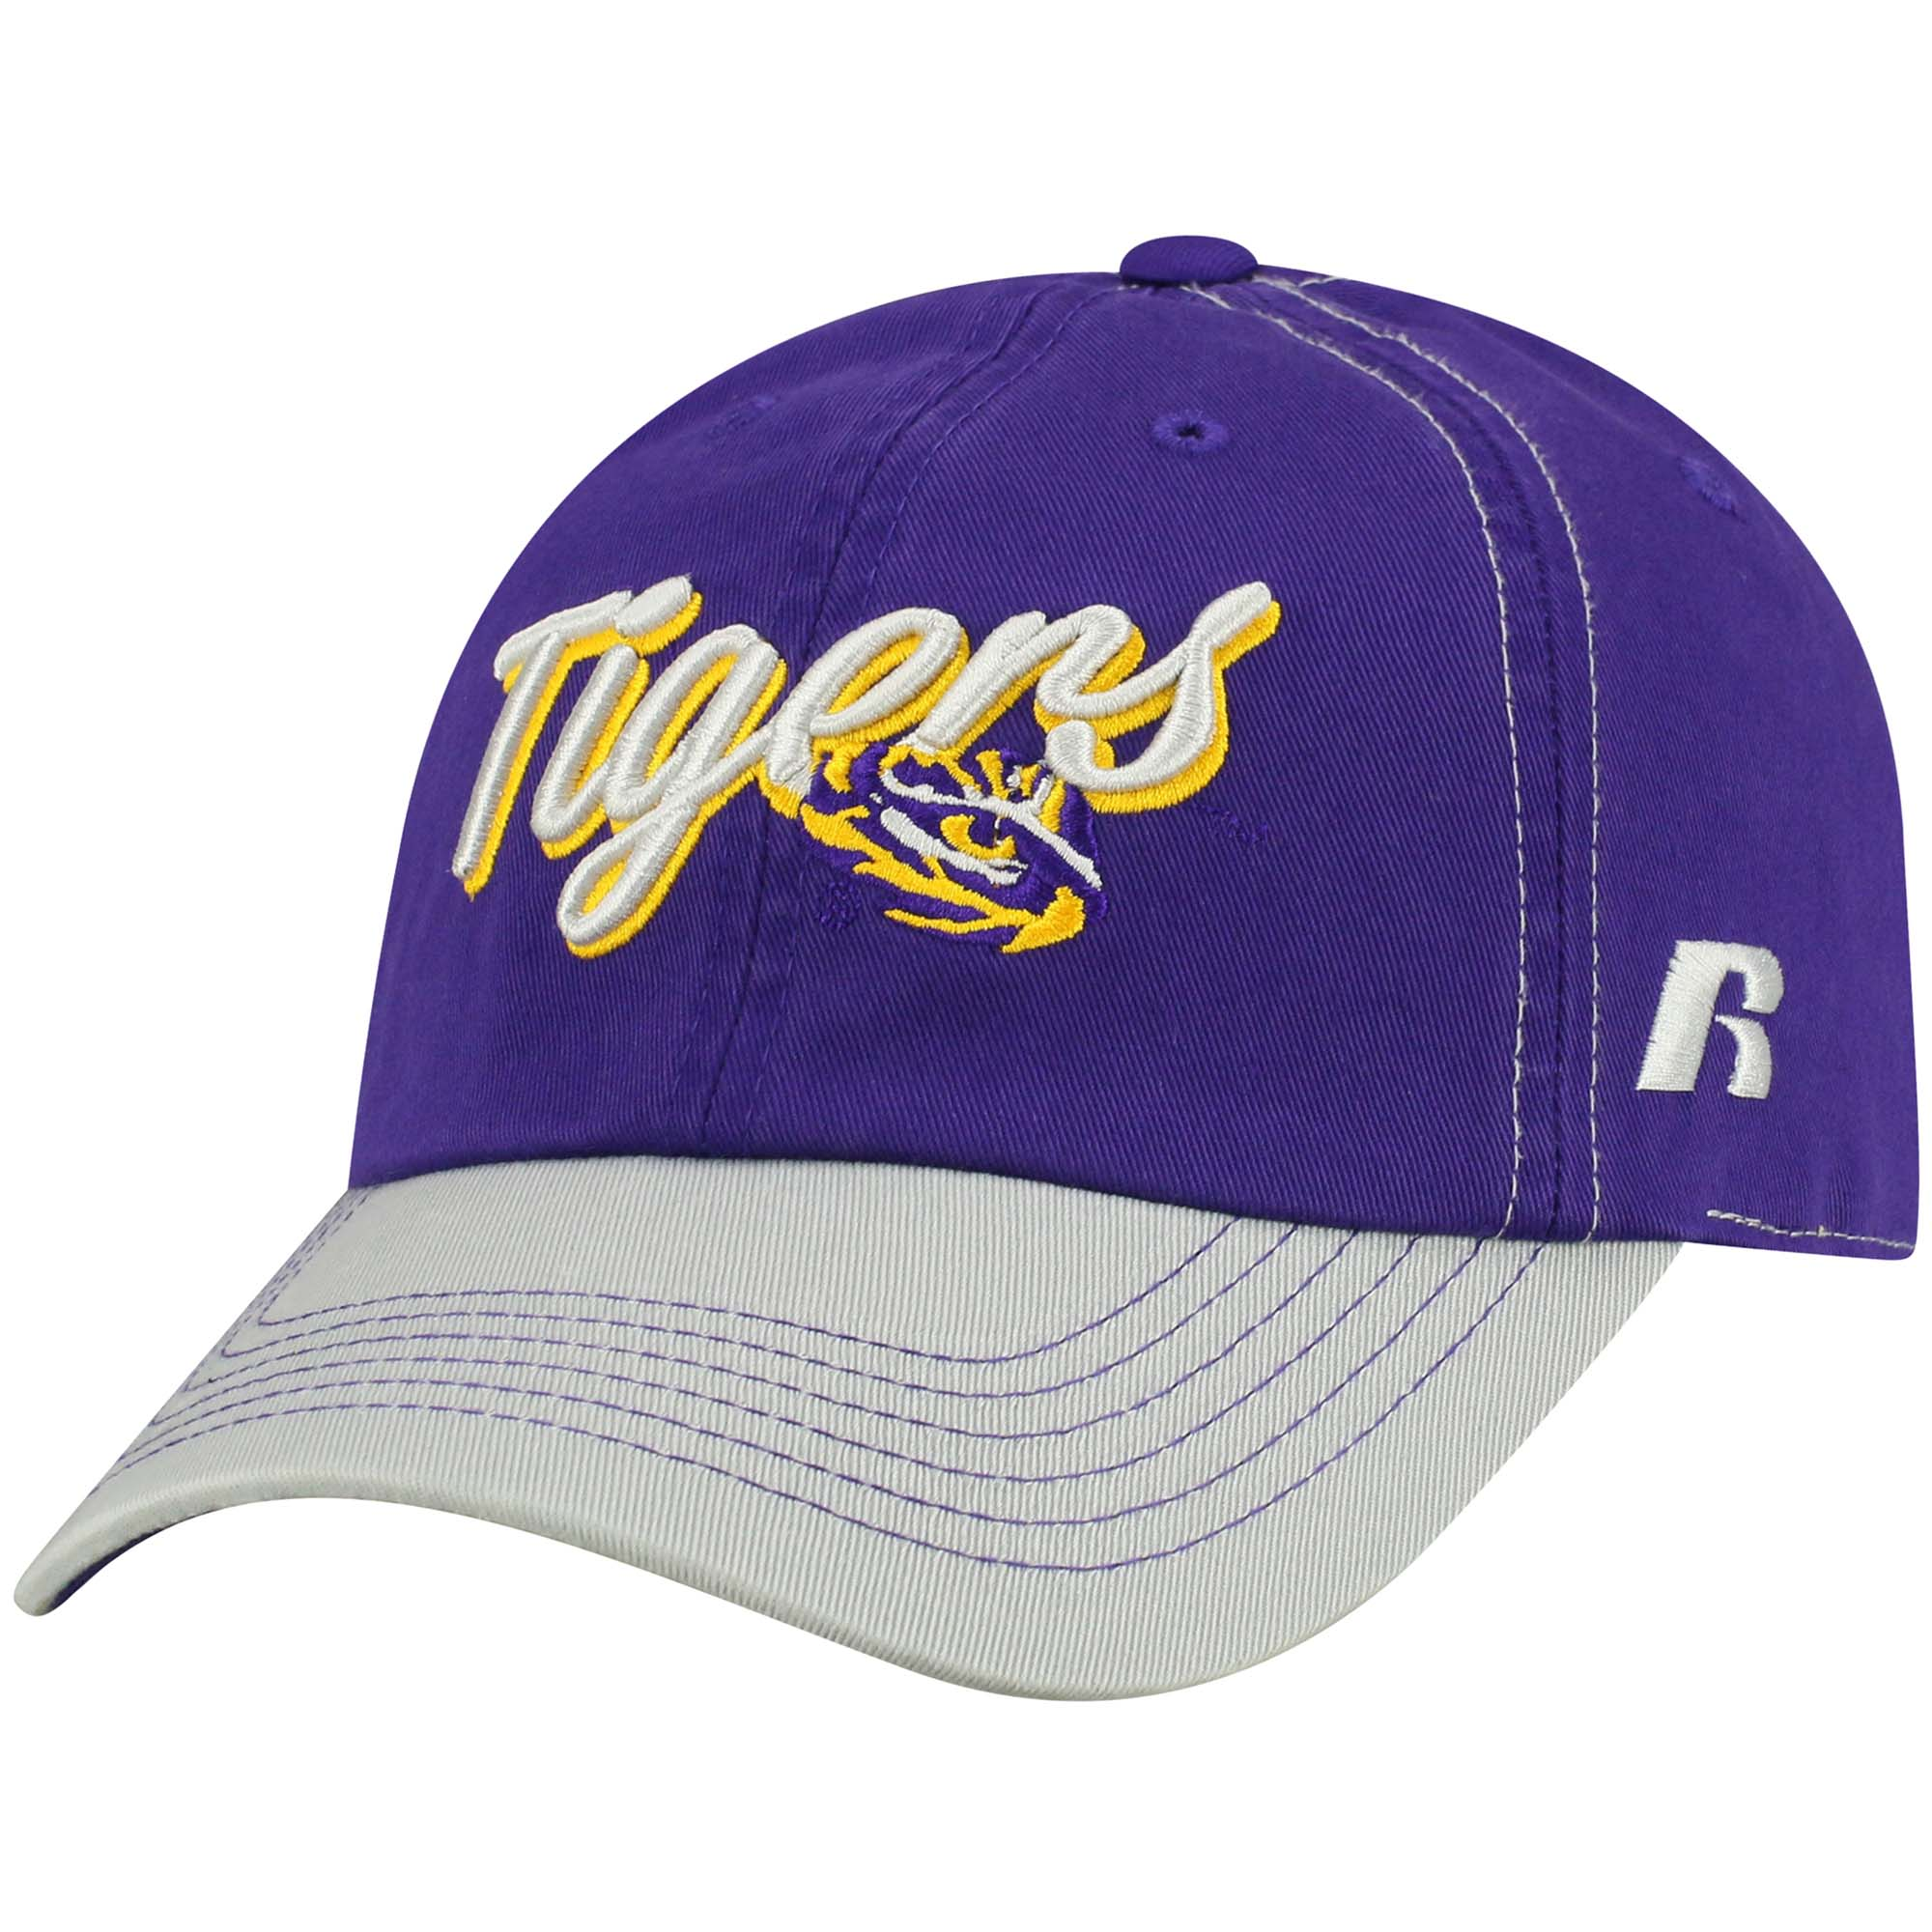 Women's Russell Purple LSU Tigers Sojourn Adjustable Hat - OSFA